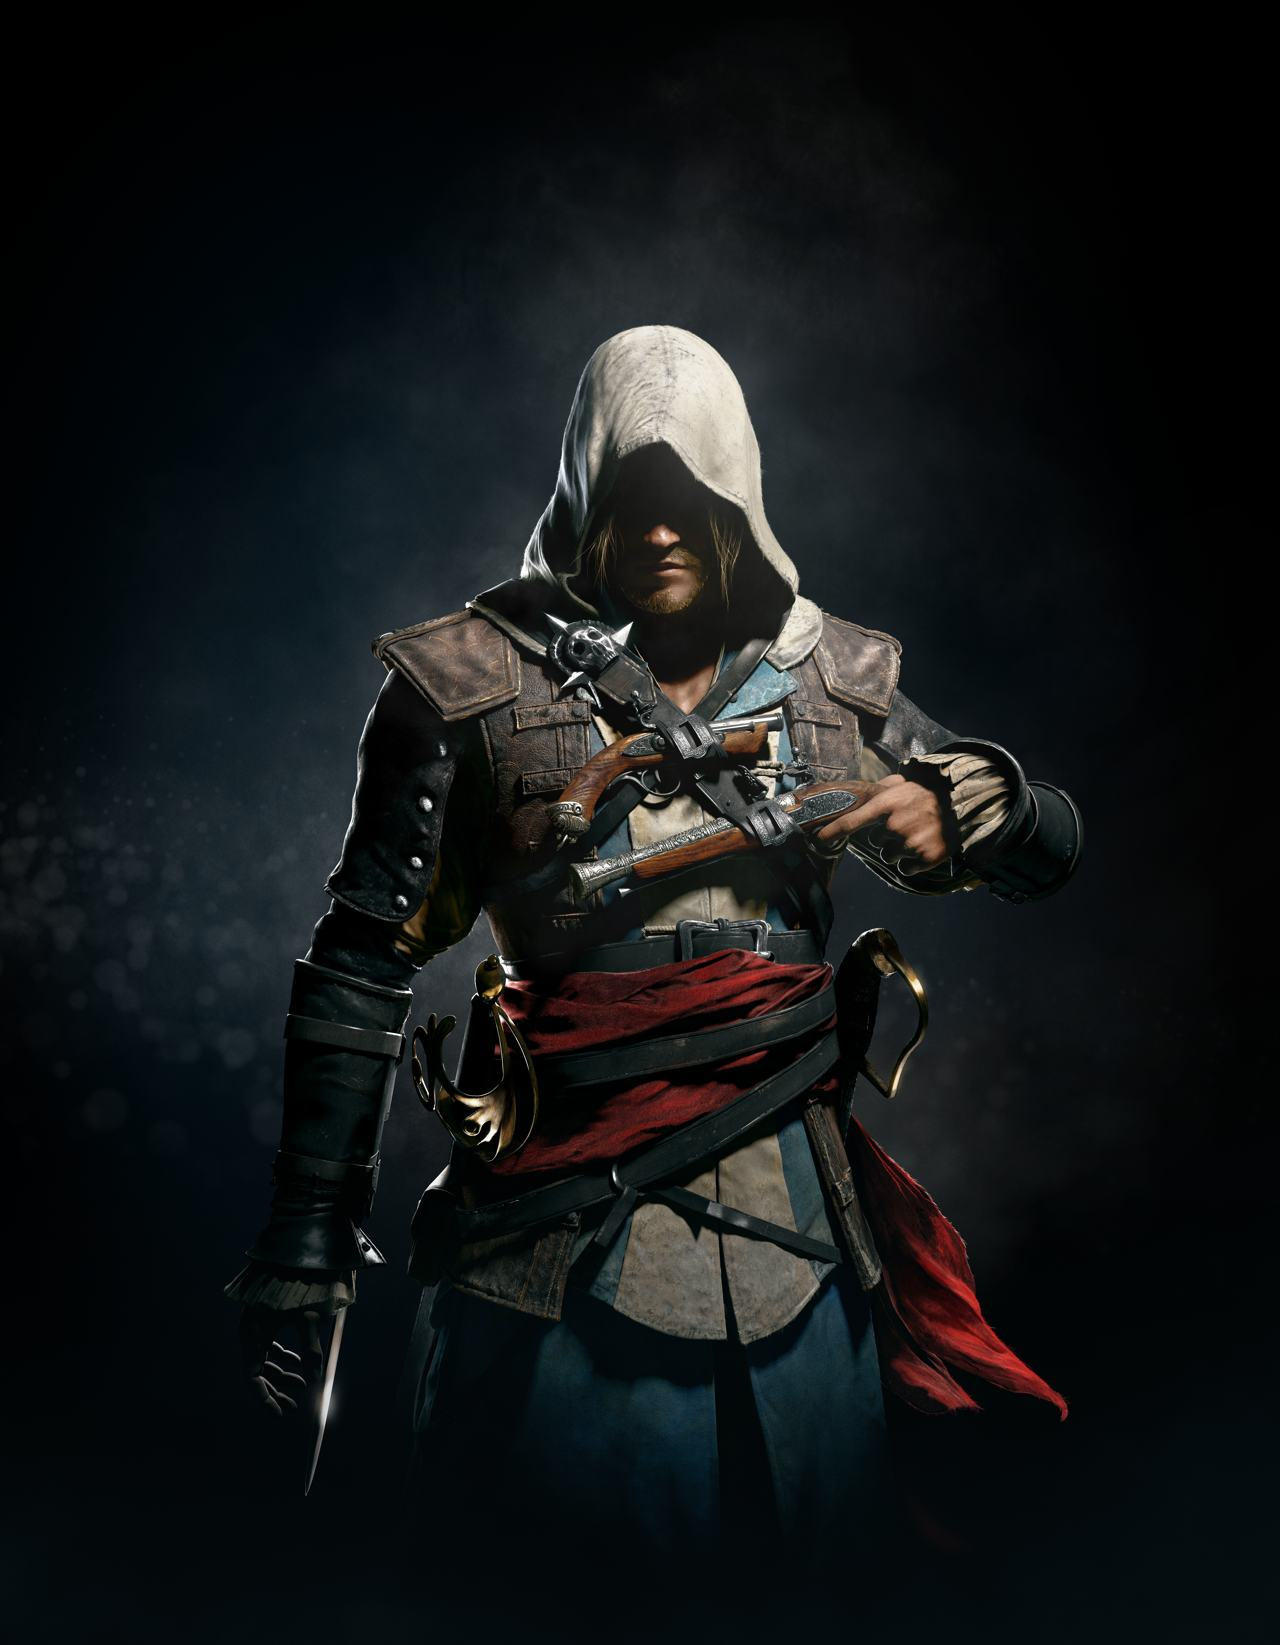 Ac4bf_midrez_sp_01_edwardshadow